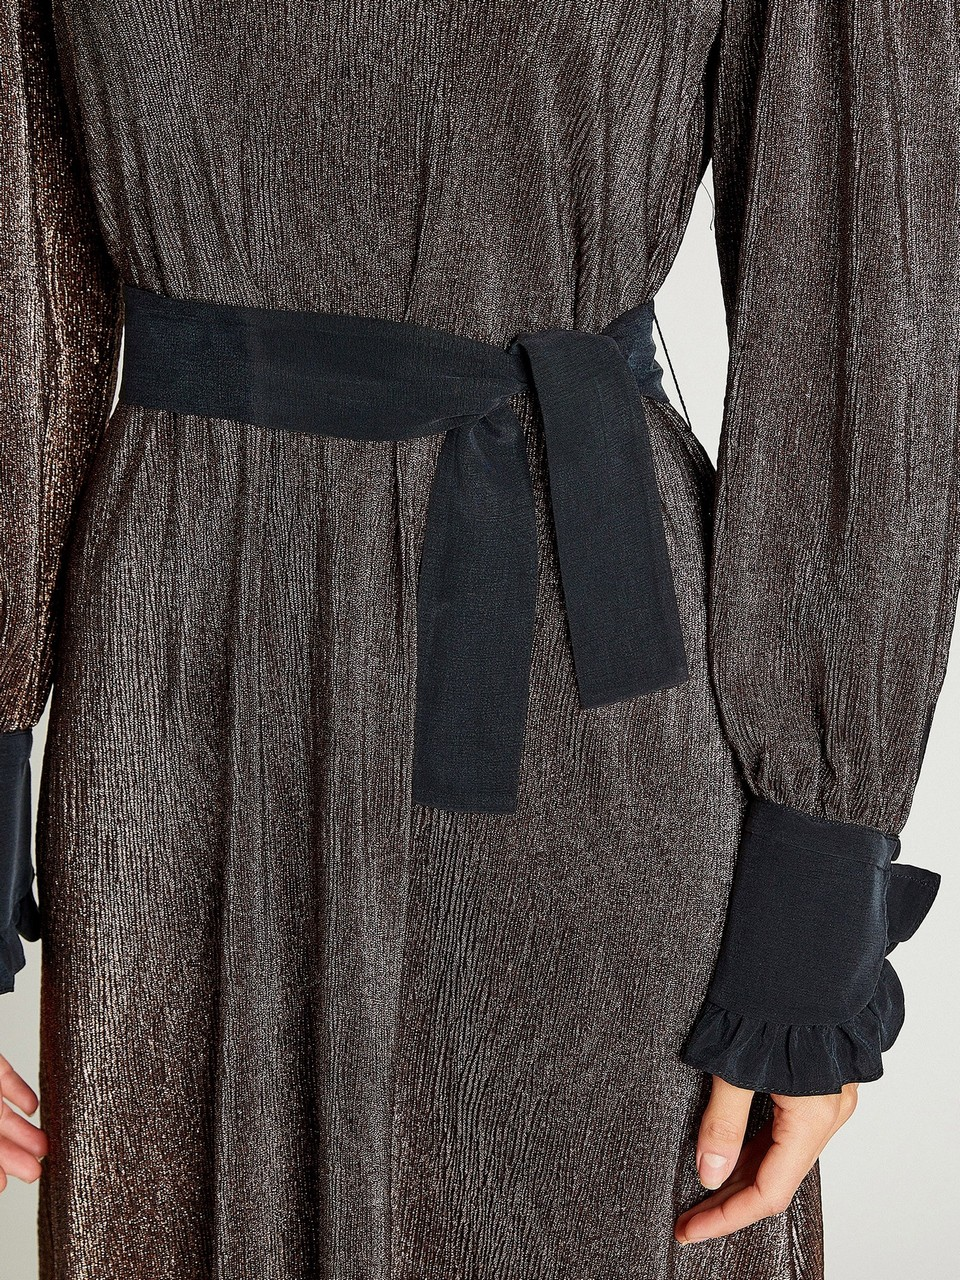 Silvery Loose Fit Dress